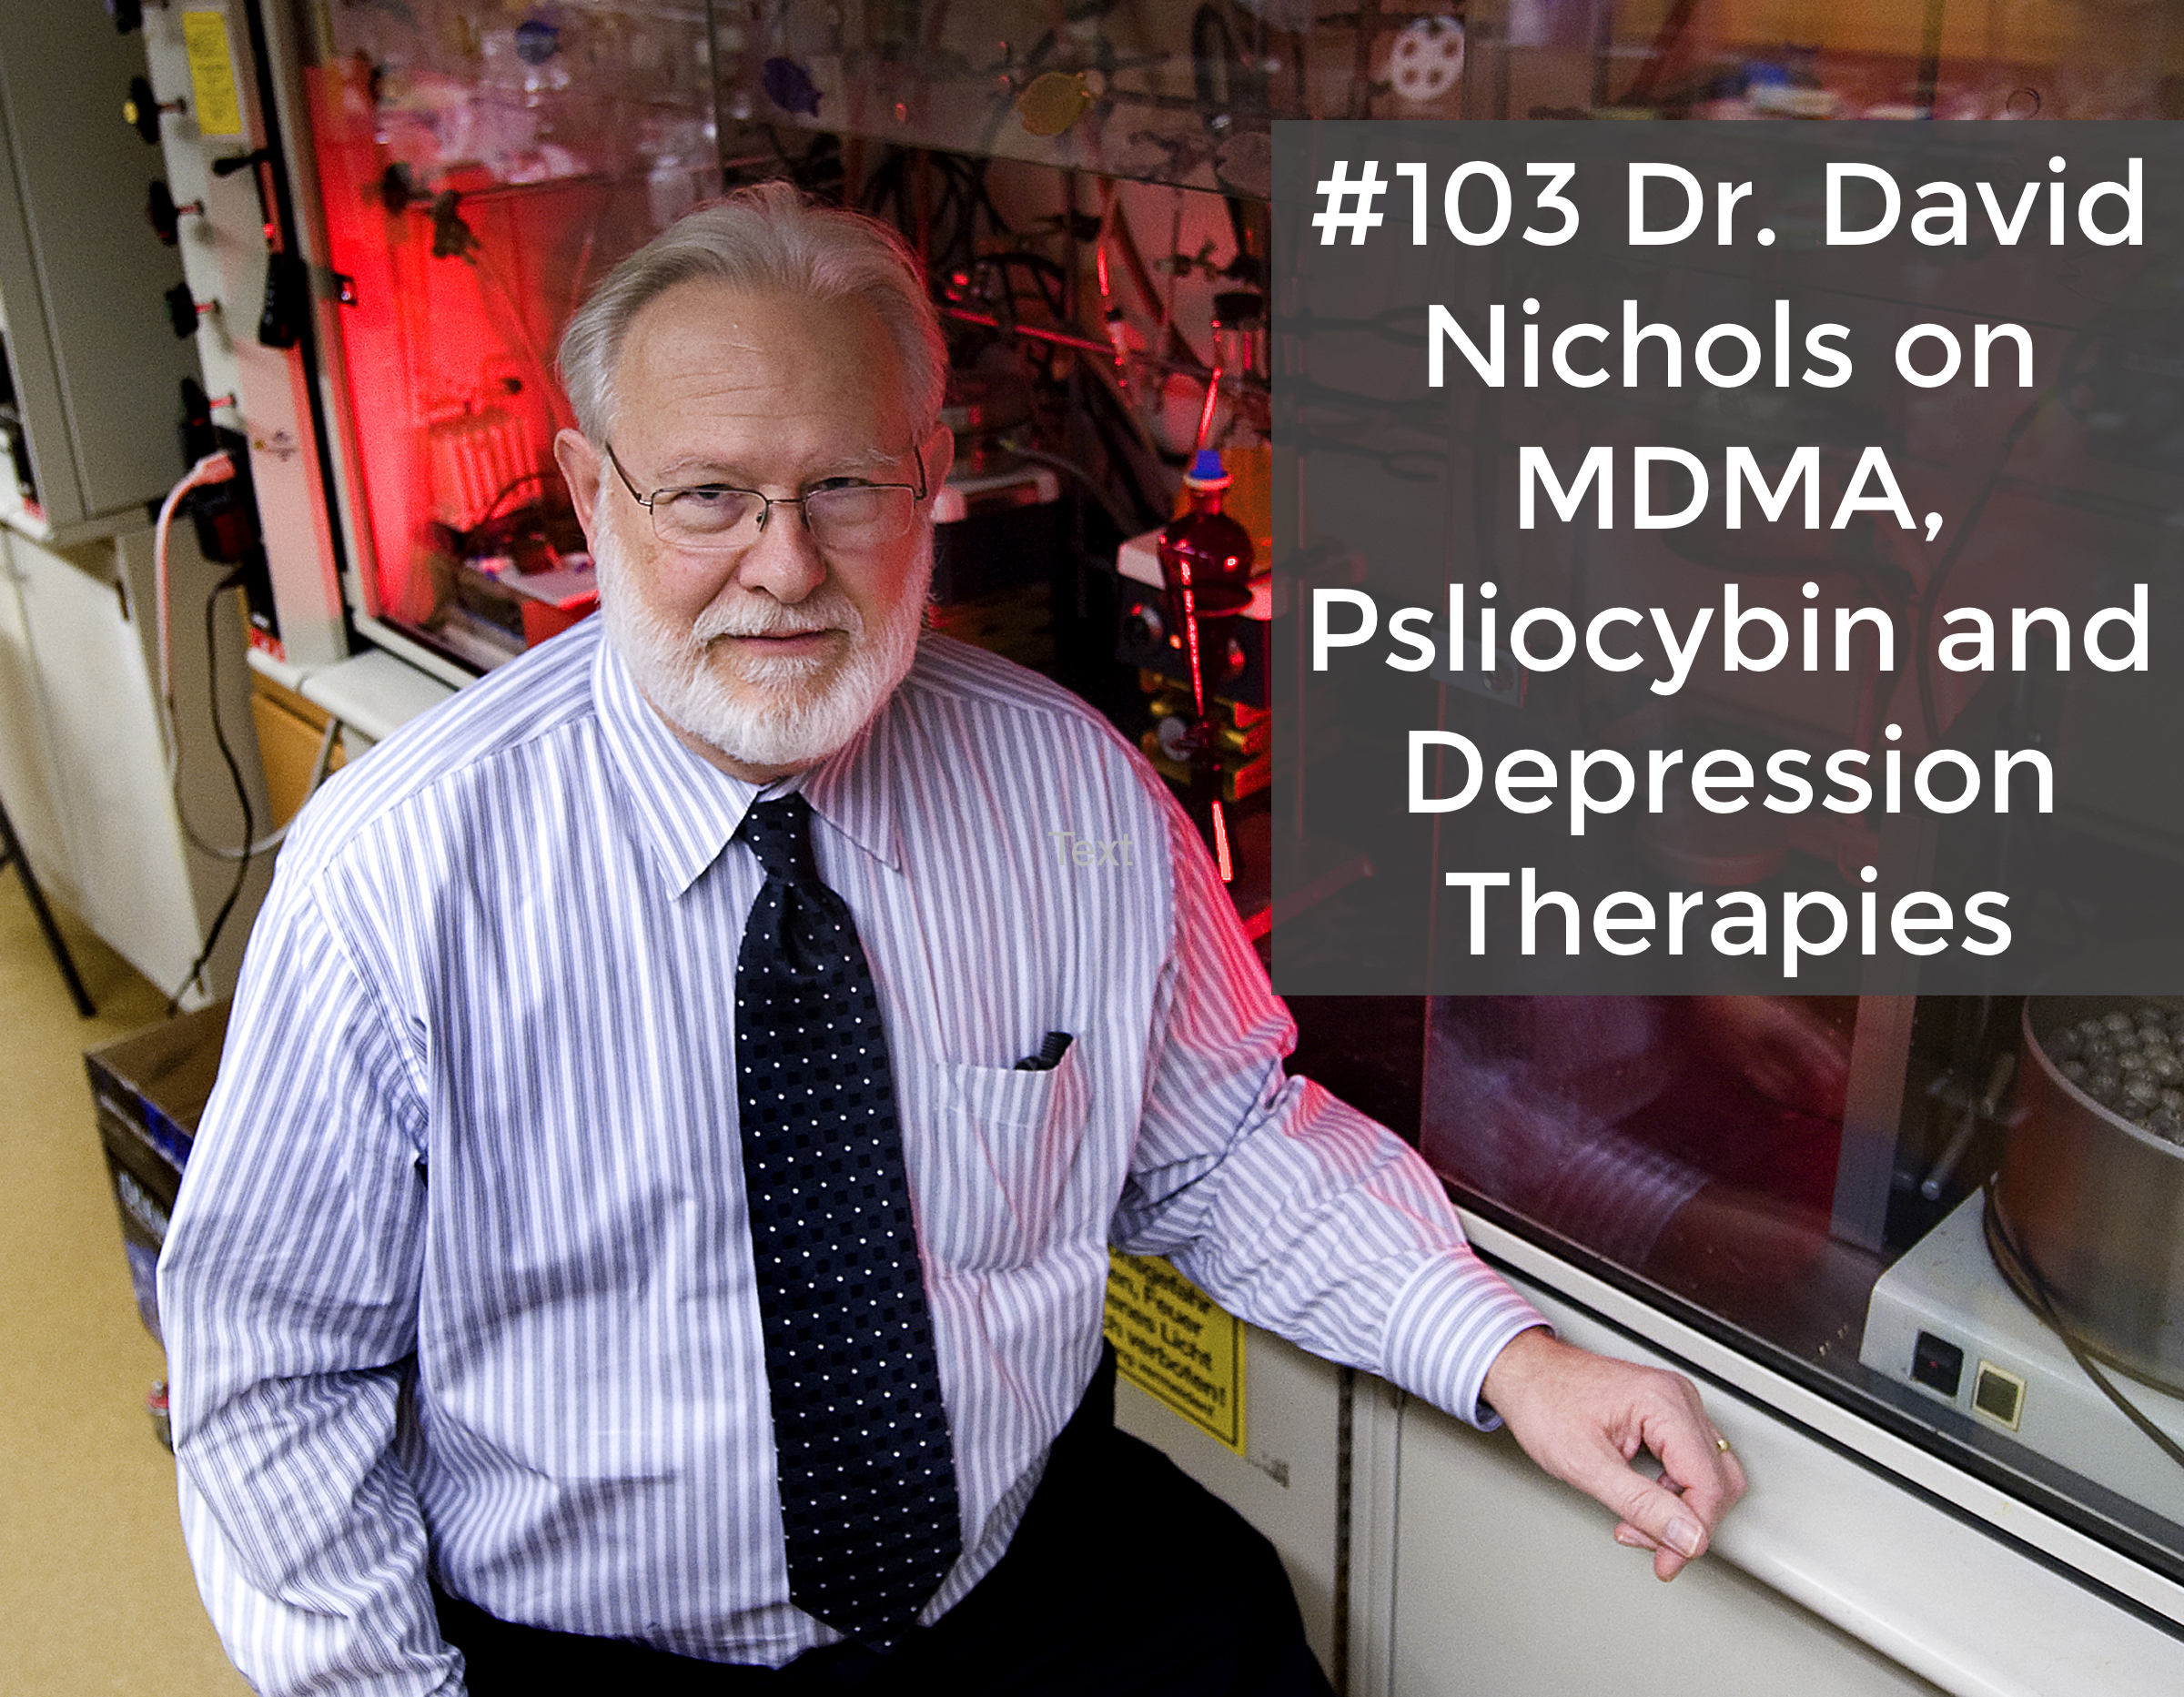 103-Dr.-David-Nichols-on-MDMA-Psilocybin-and-Depression-Therapies.jpg